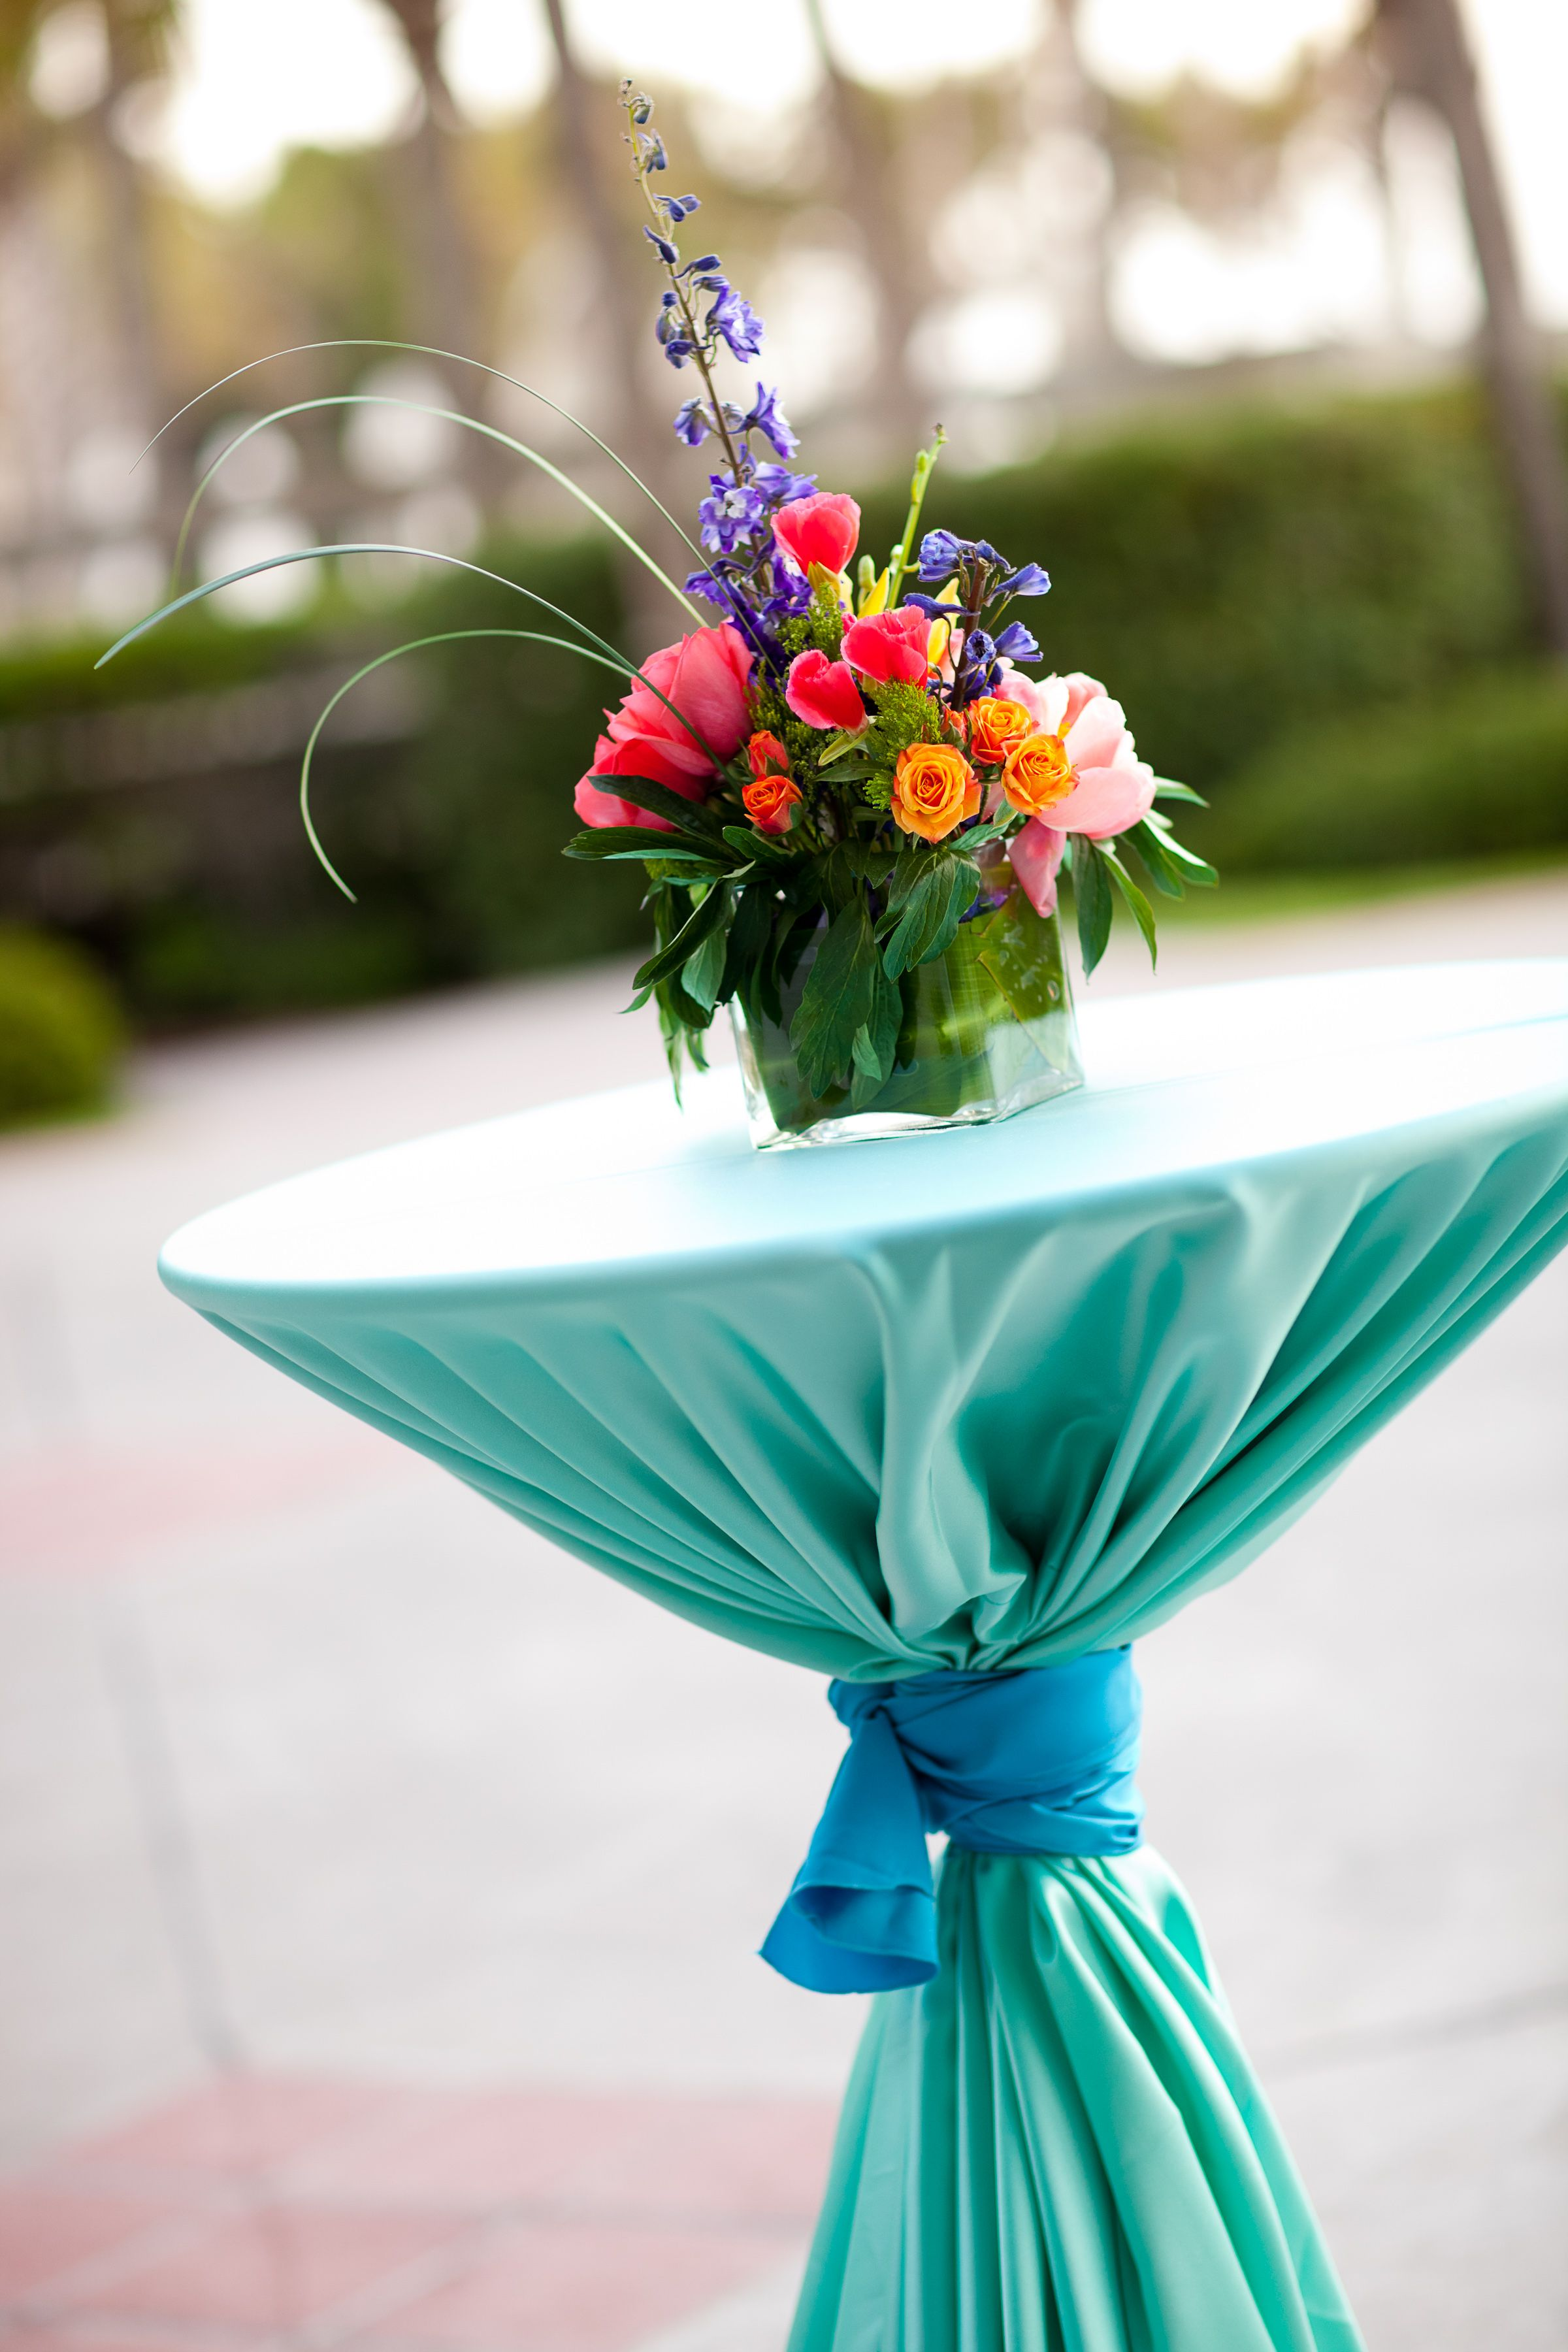 Bring color to cocktail hour with turquoise table